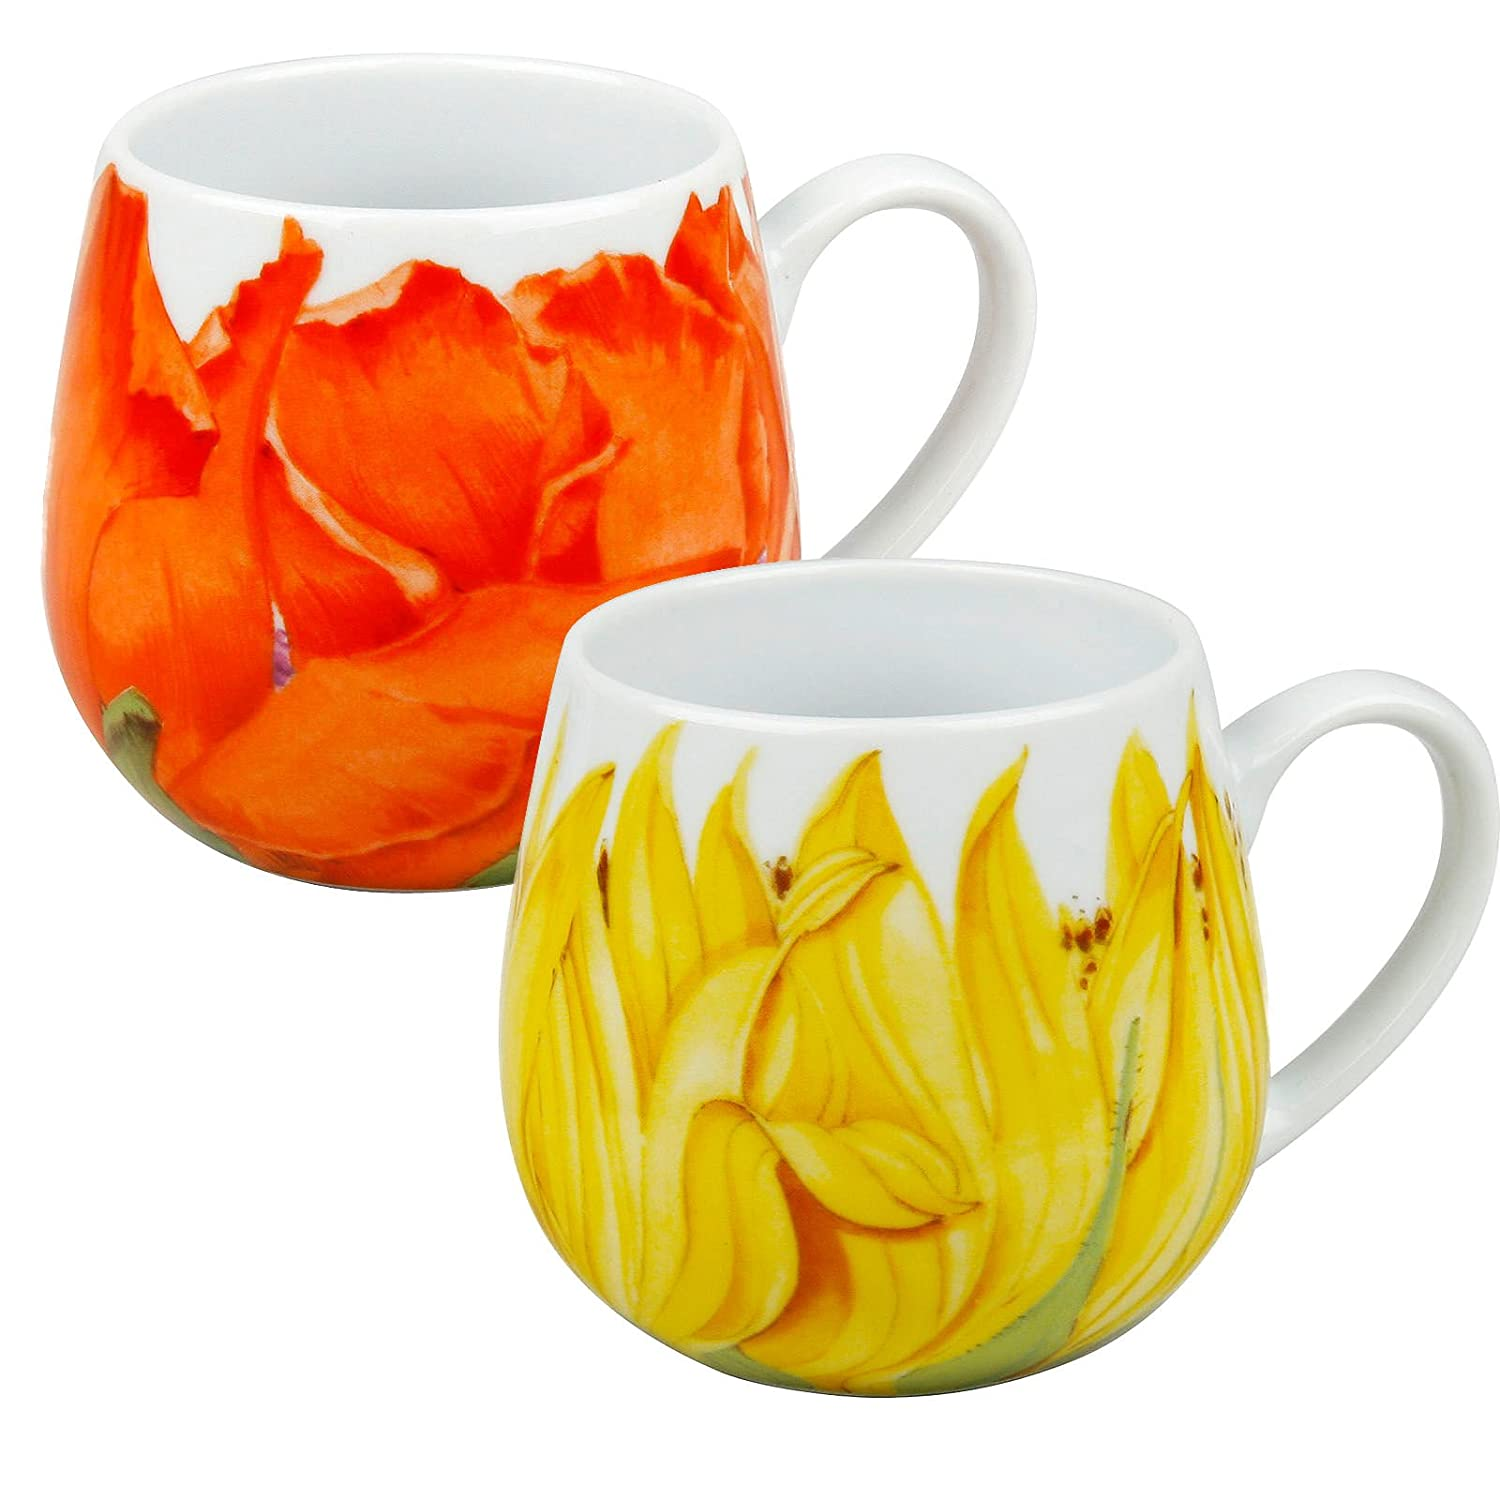 Konitz Poppy And Sunflower Blossoms Snuggle Mugs, Set Of 2